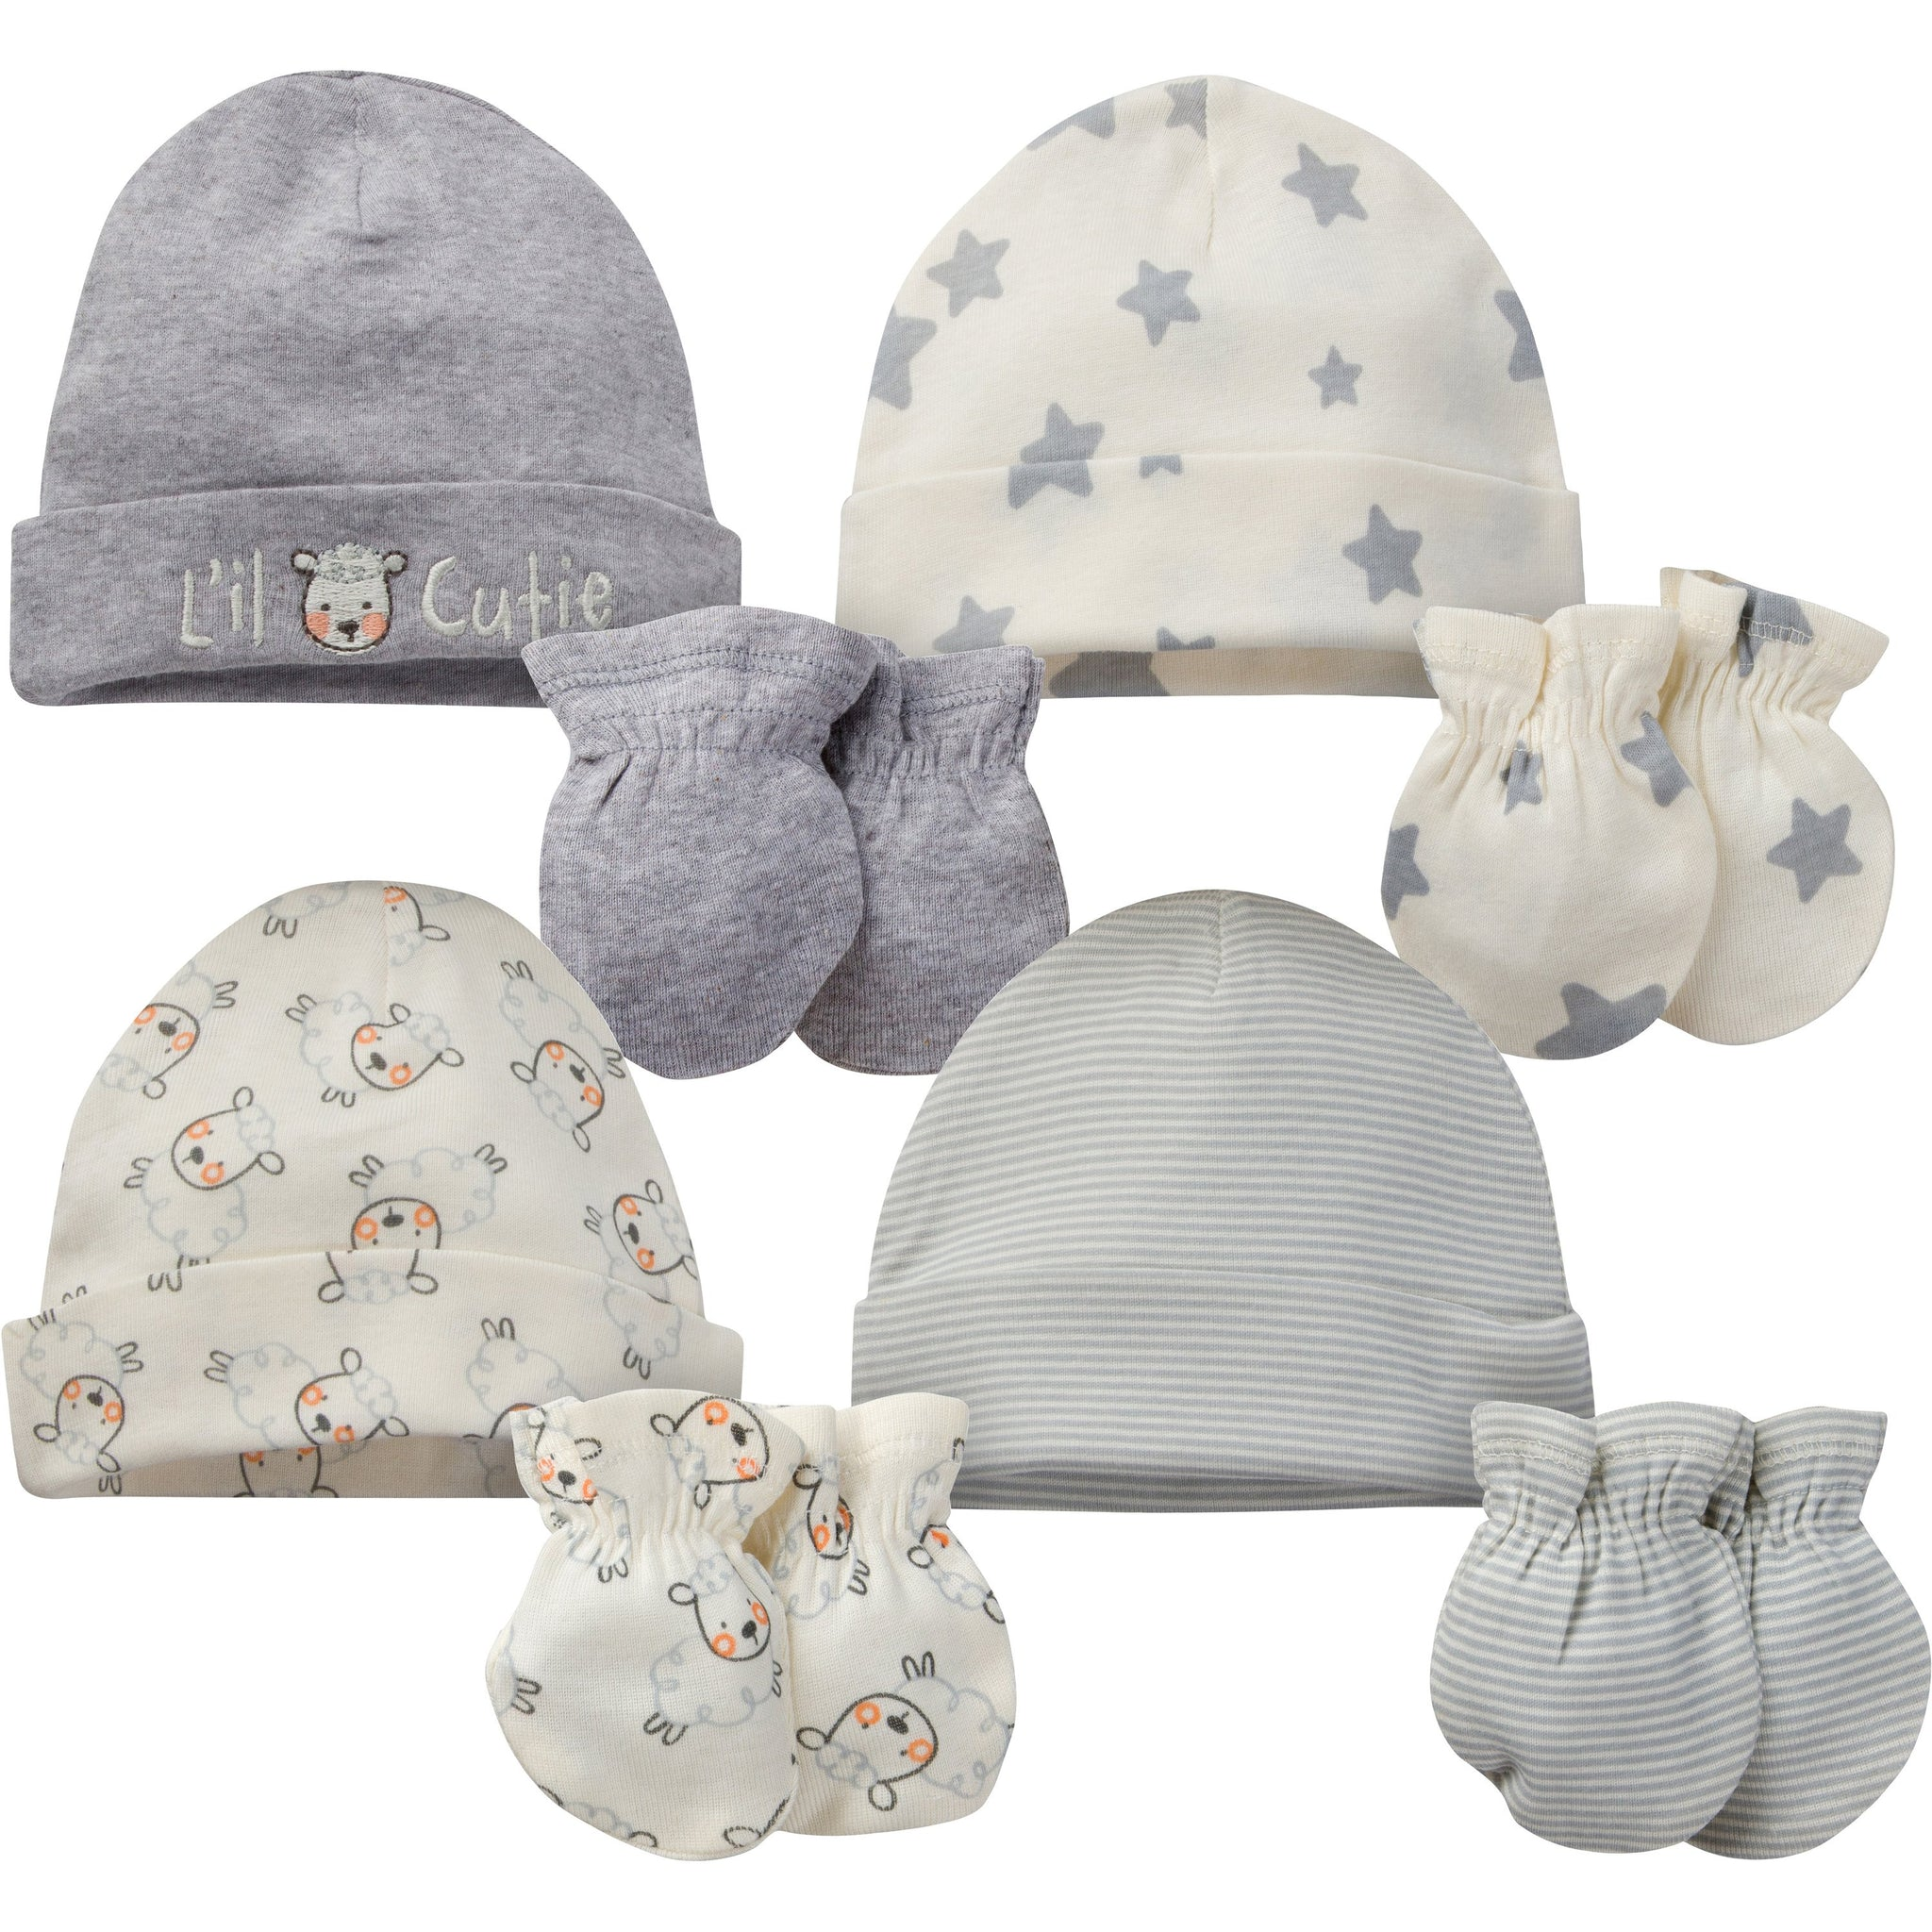 8-Piece Neutral Sheep Organic Cap and Mitten Set